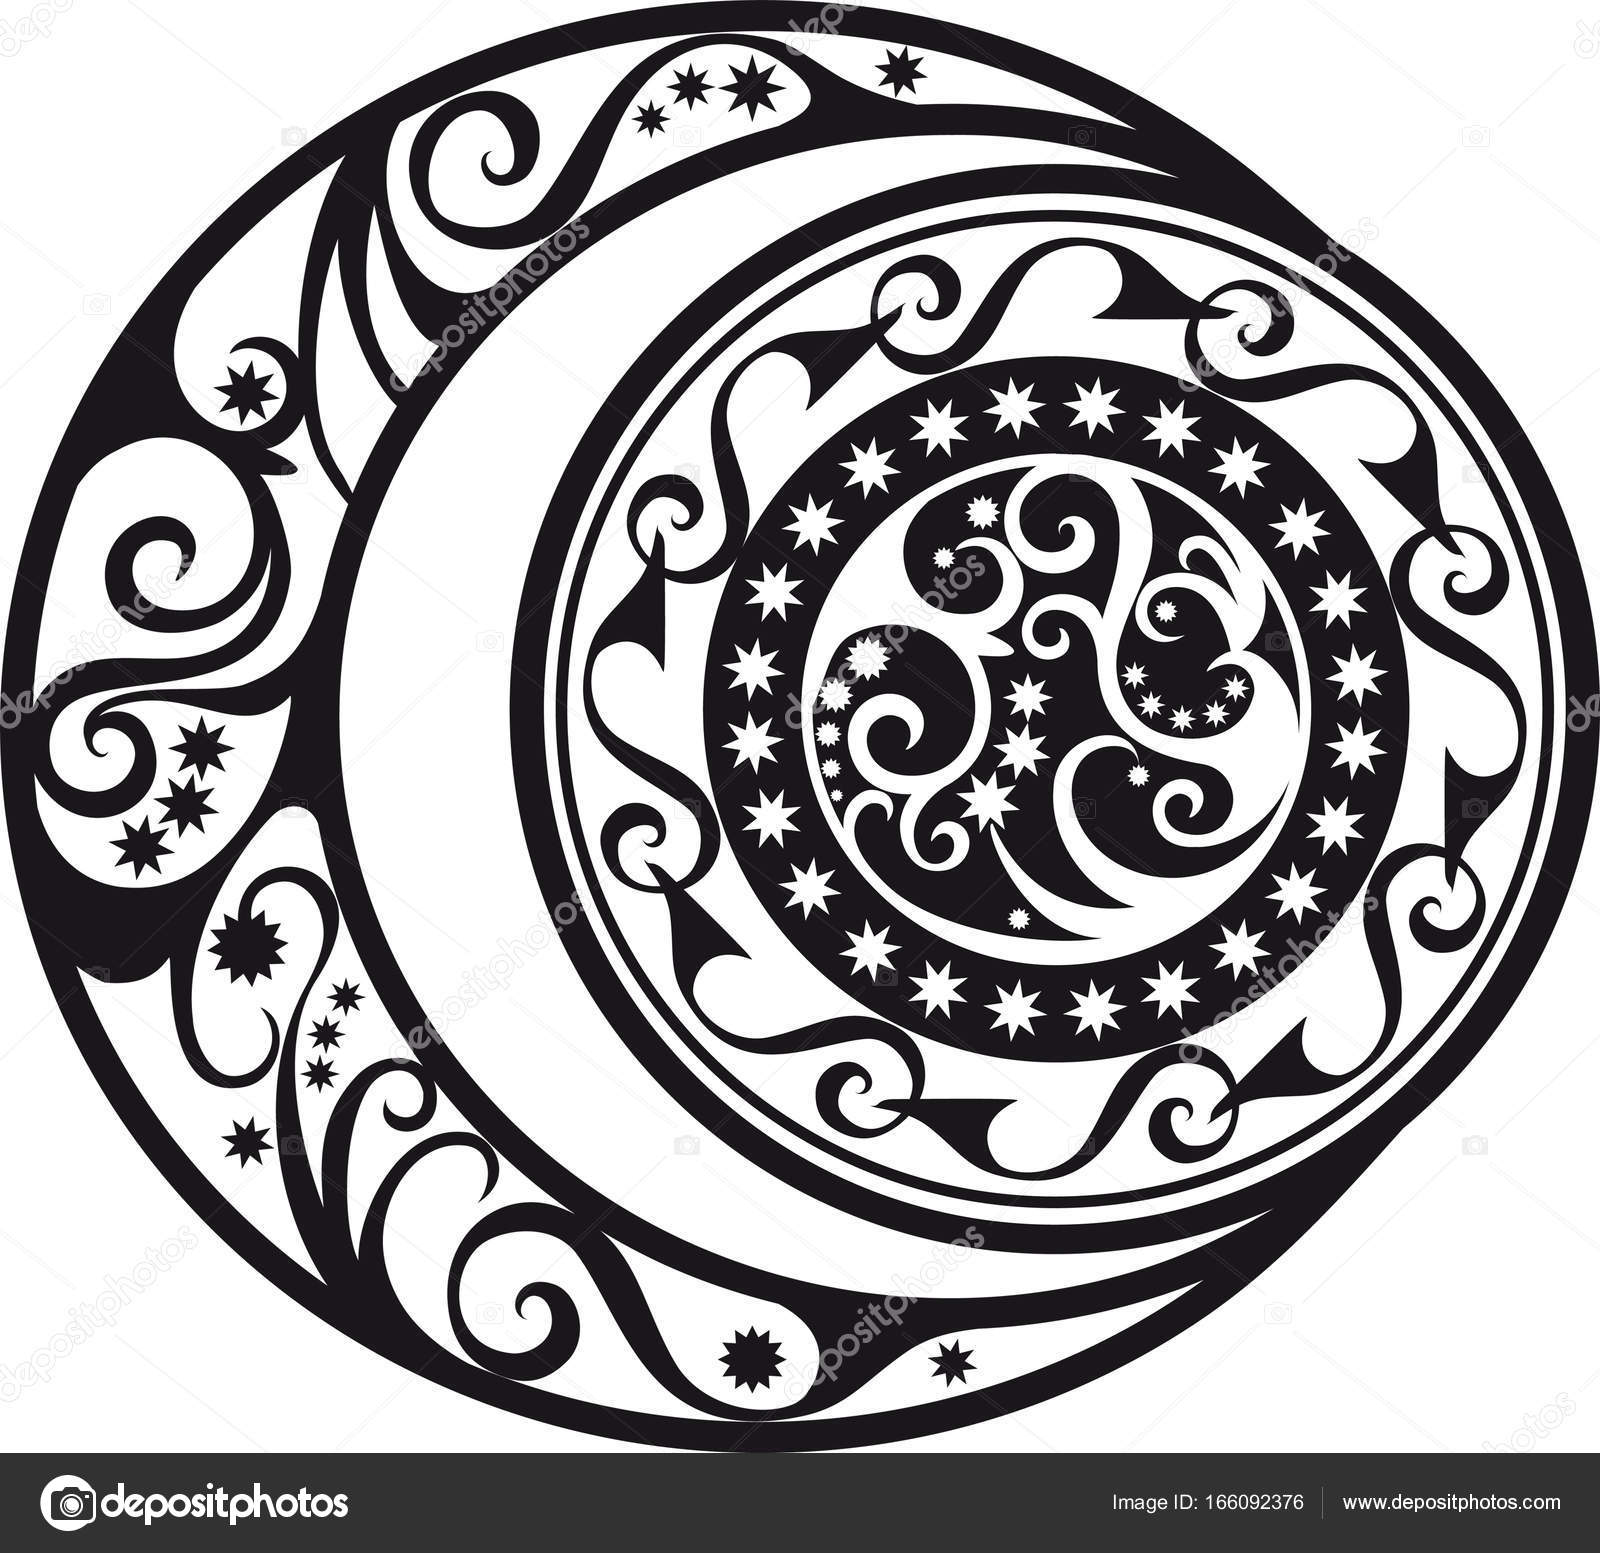 Abstract pattern crescent moon and sun symbol stock vector abstract pattern crescent moon and sun symbol stock vector biocorpaavc Gallery